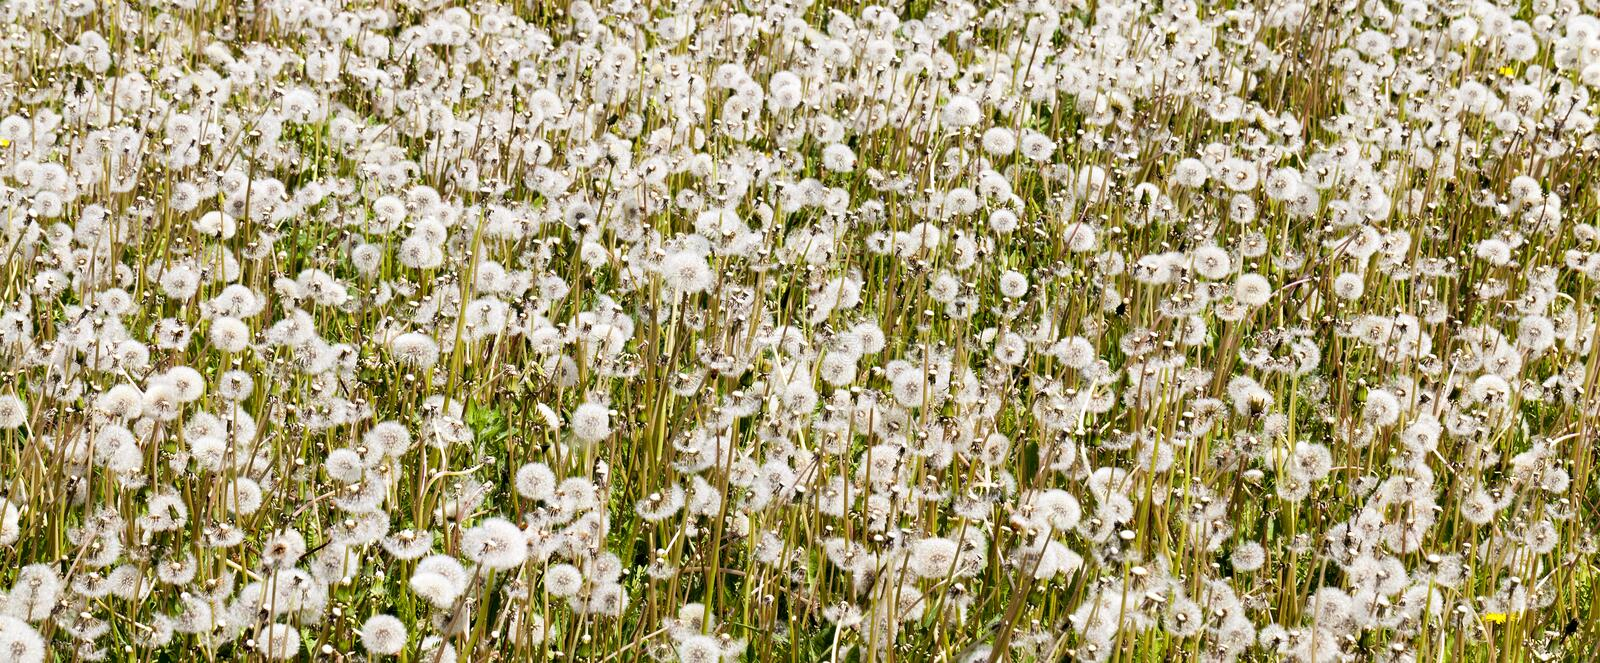 Field of dandelions flowers. Summer field with a lot of growing white balls of dandelions. photo close-up of a meadow in the daytime royalty free stock photos